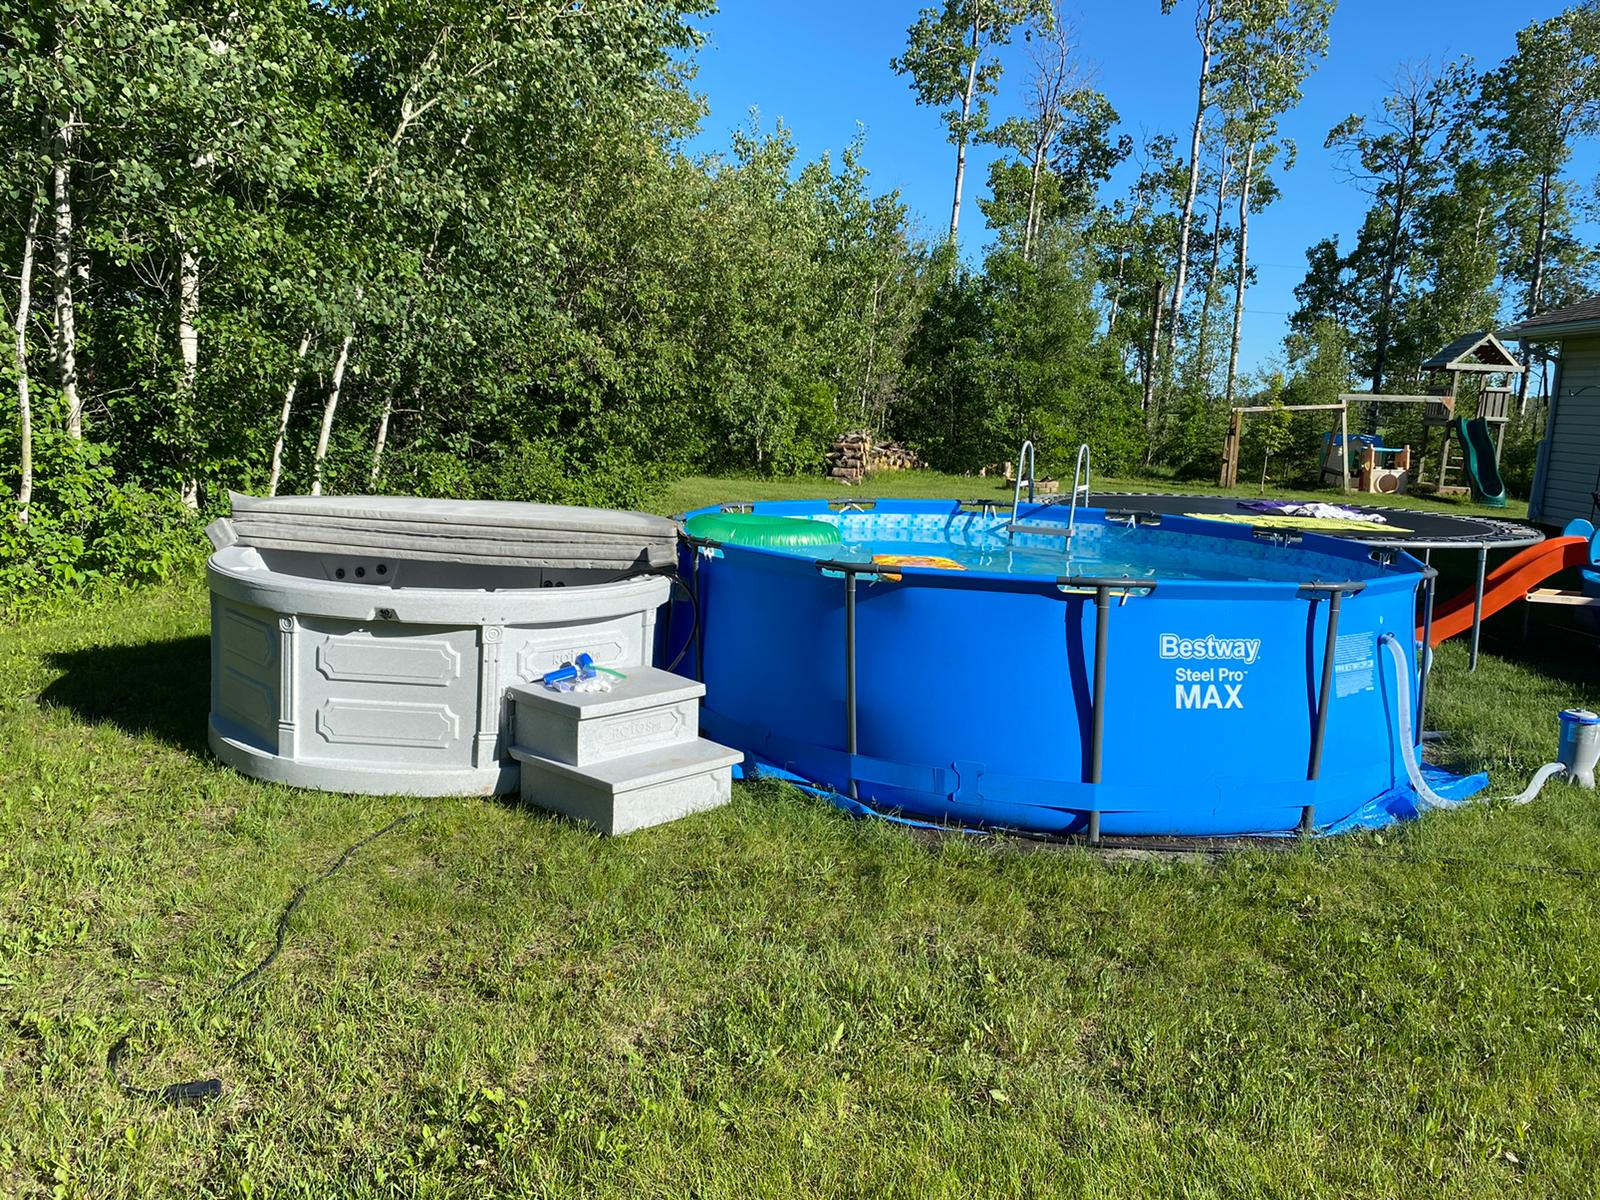 Rent-a-hot-tub-Niverville-Manitoba-The-Funky-Keg